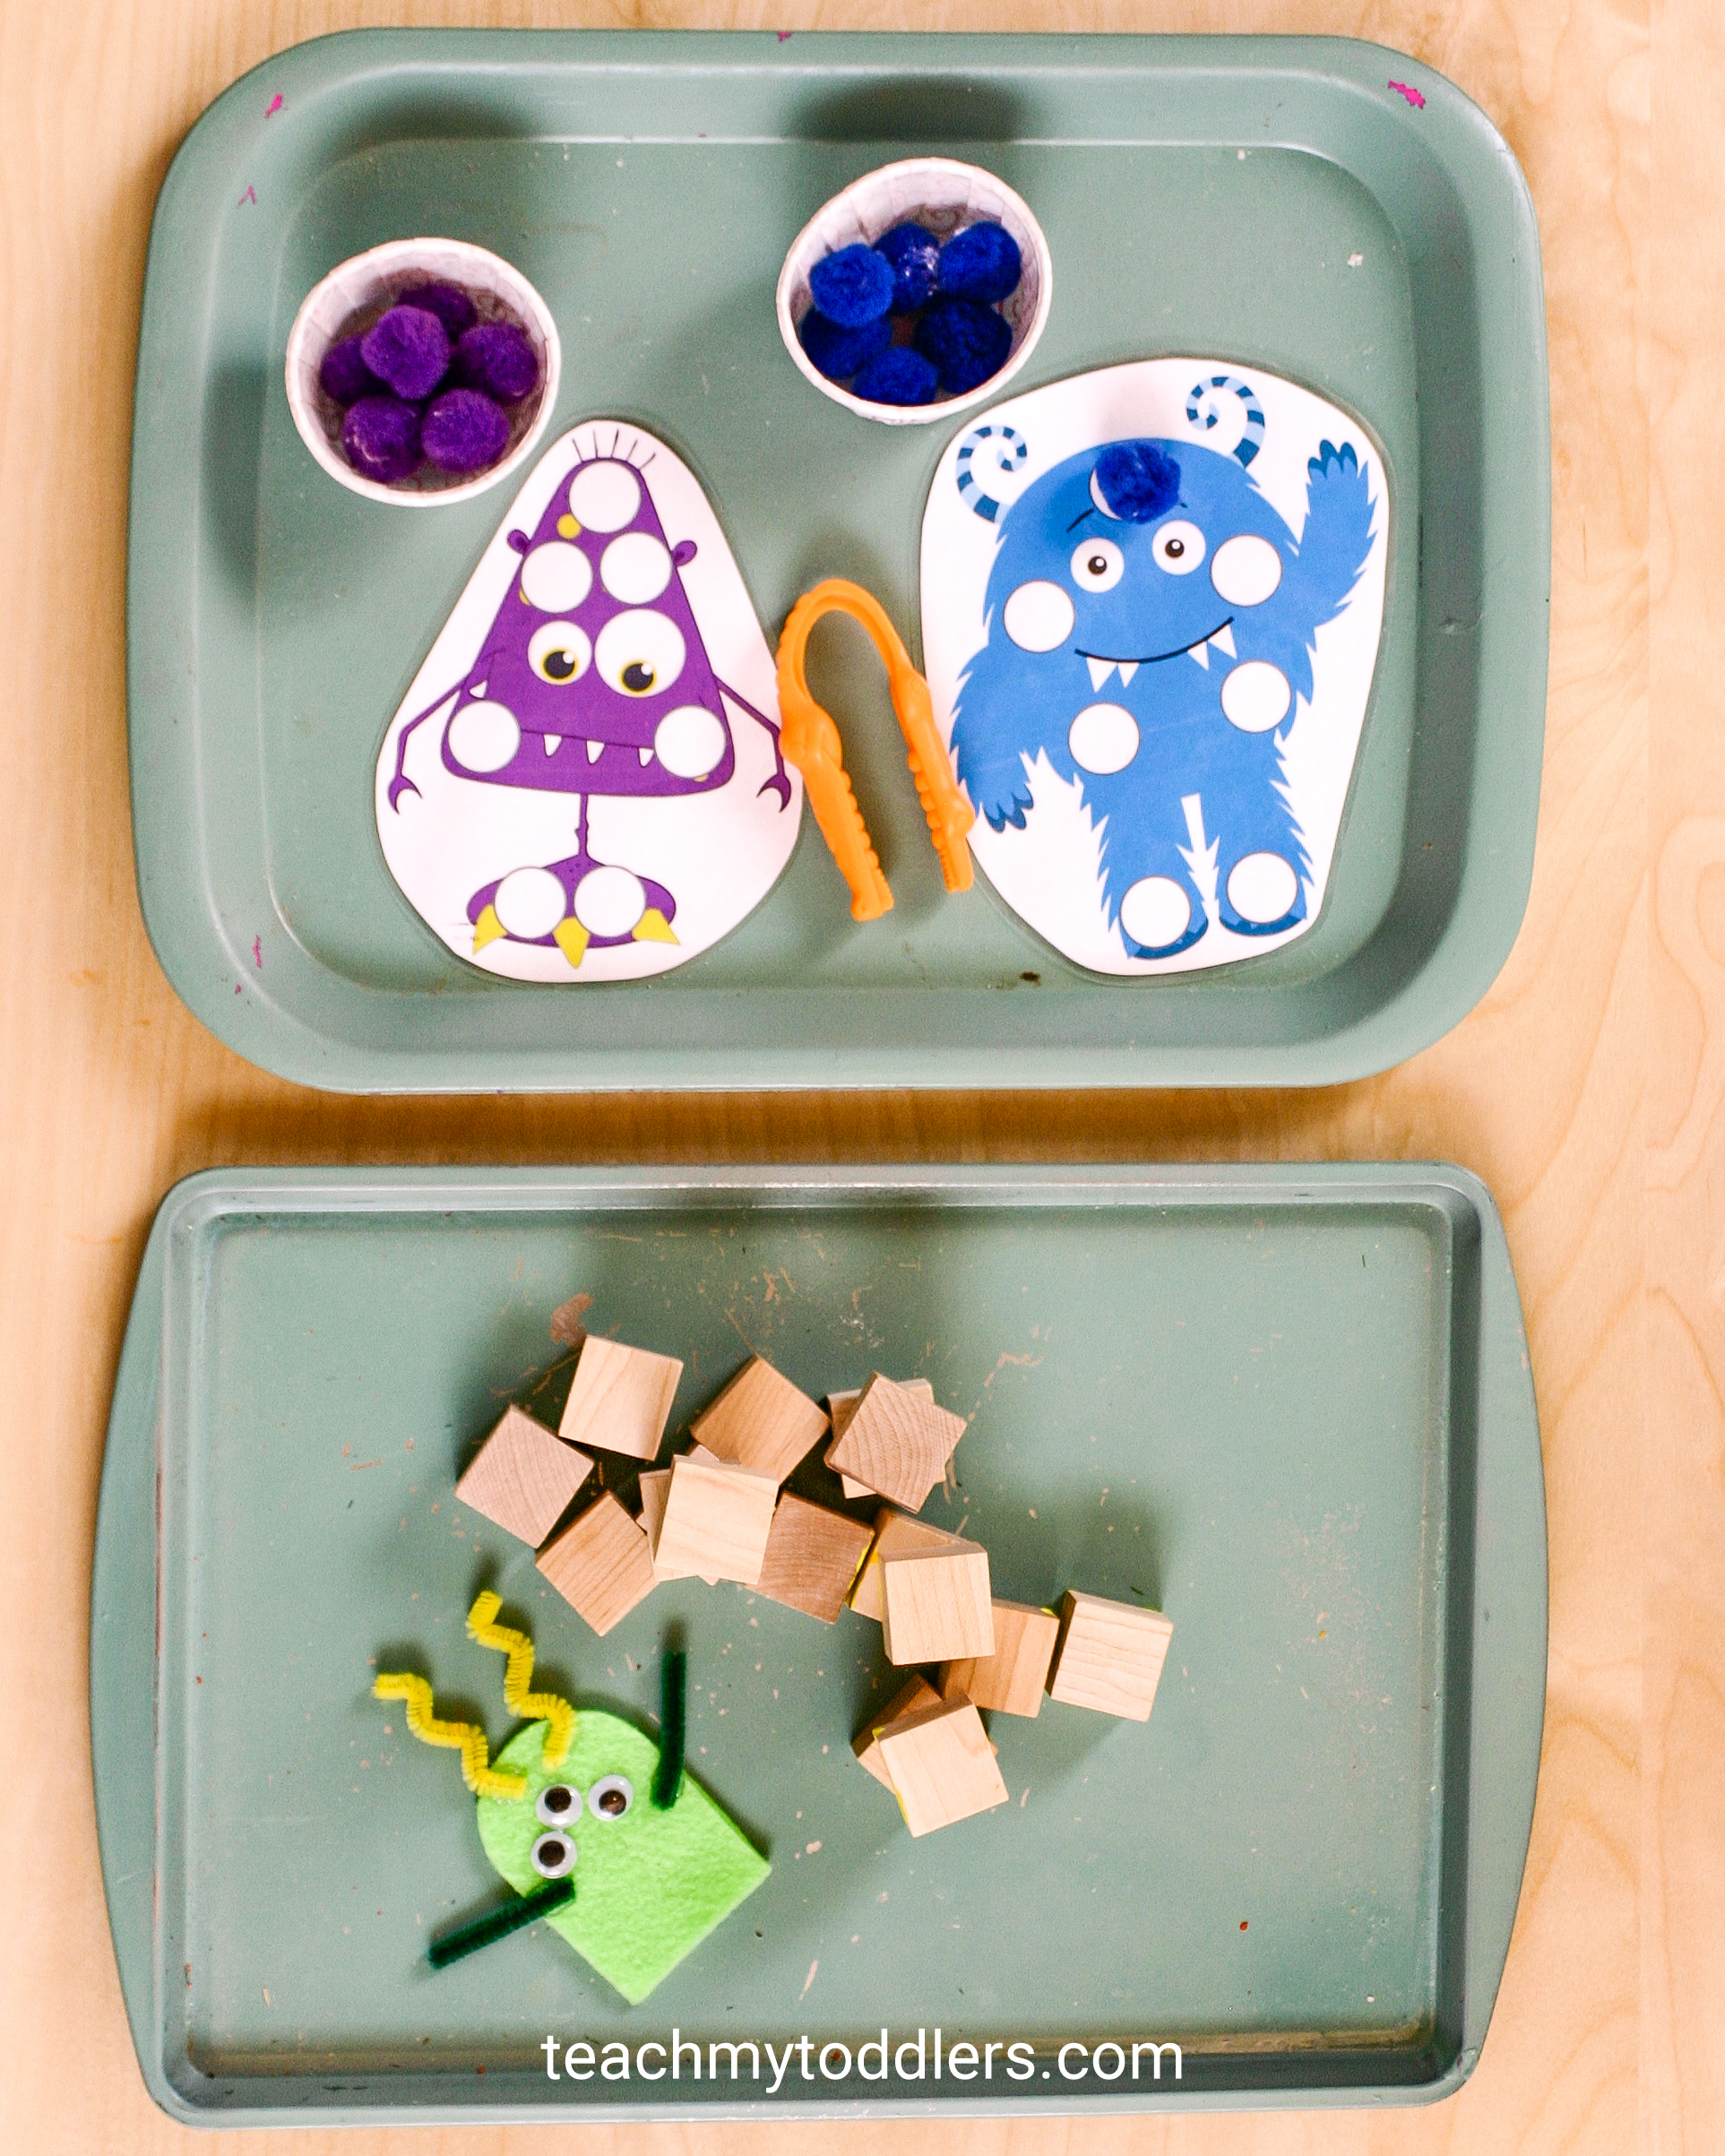 Use these great monster activities to teach toddlers the letter m